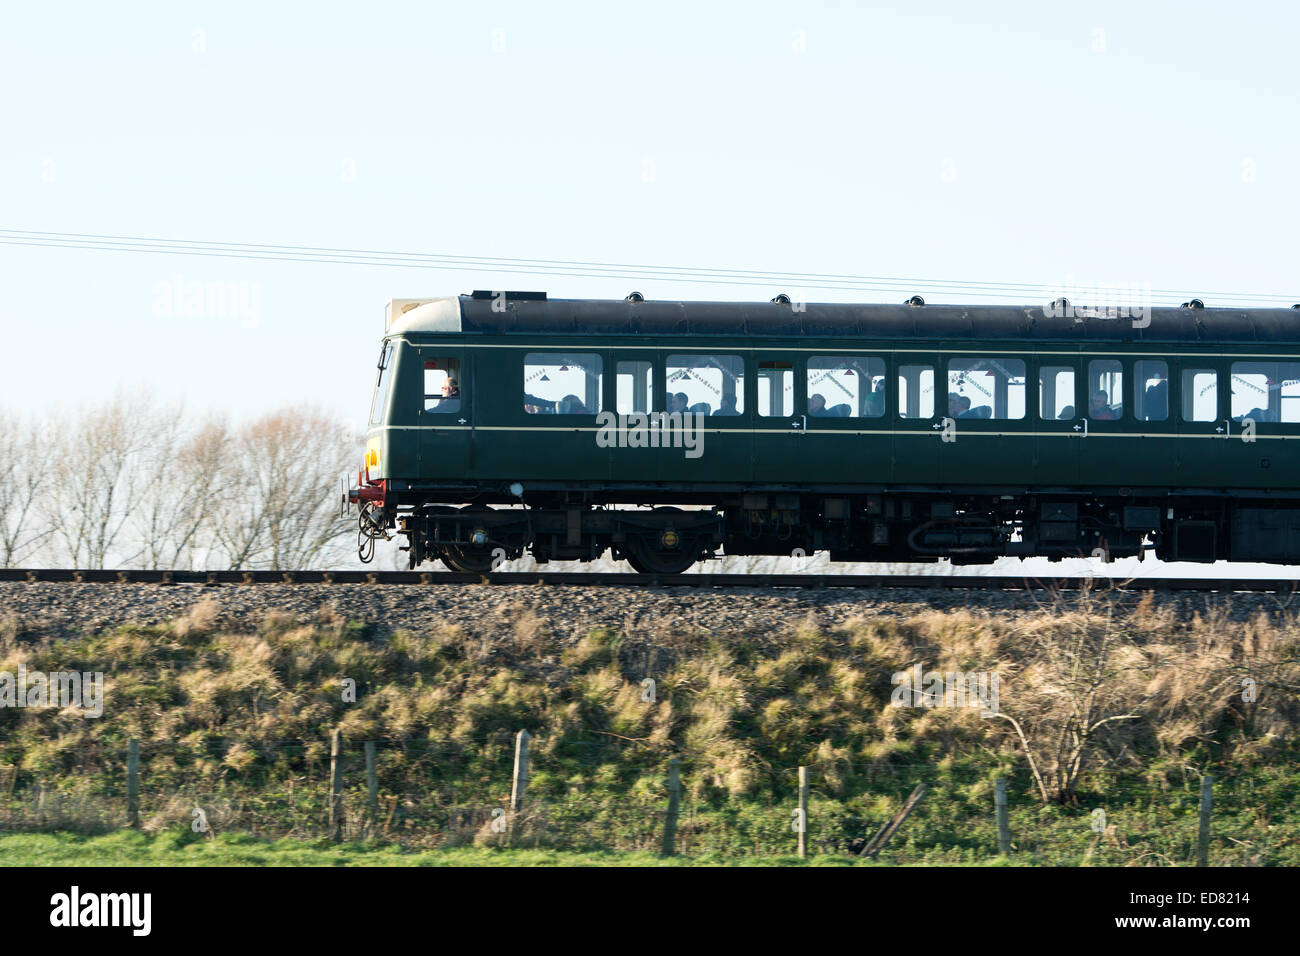 Diesel multiple-unit train on the Gloucestershire and Warwickshire Railway, Gloucestershire, UK - Stock Image